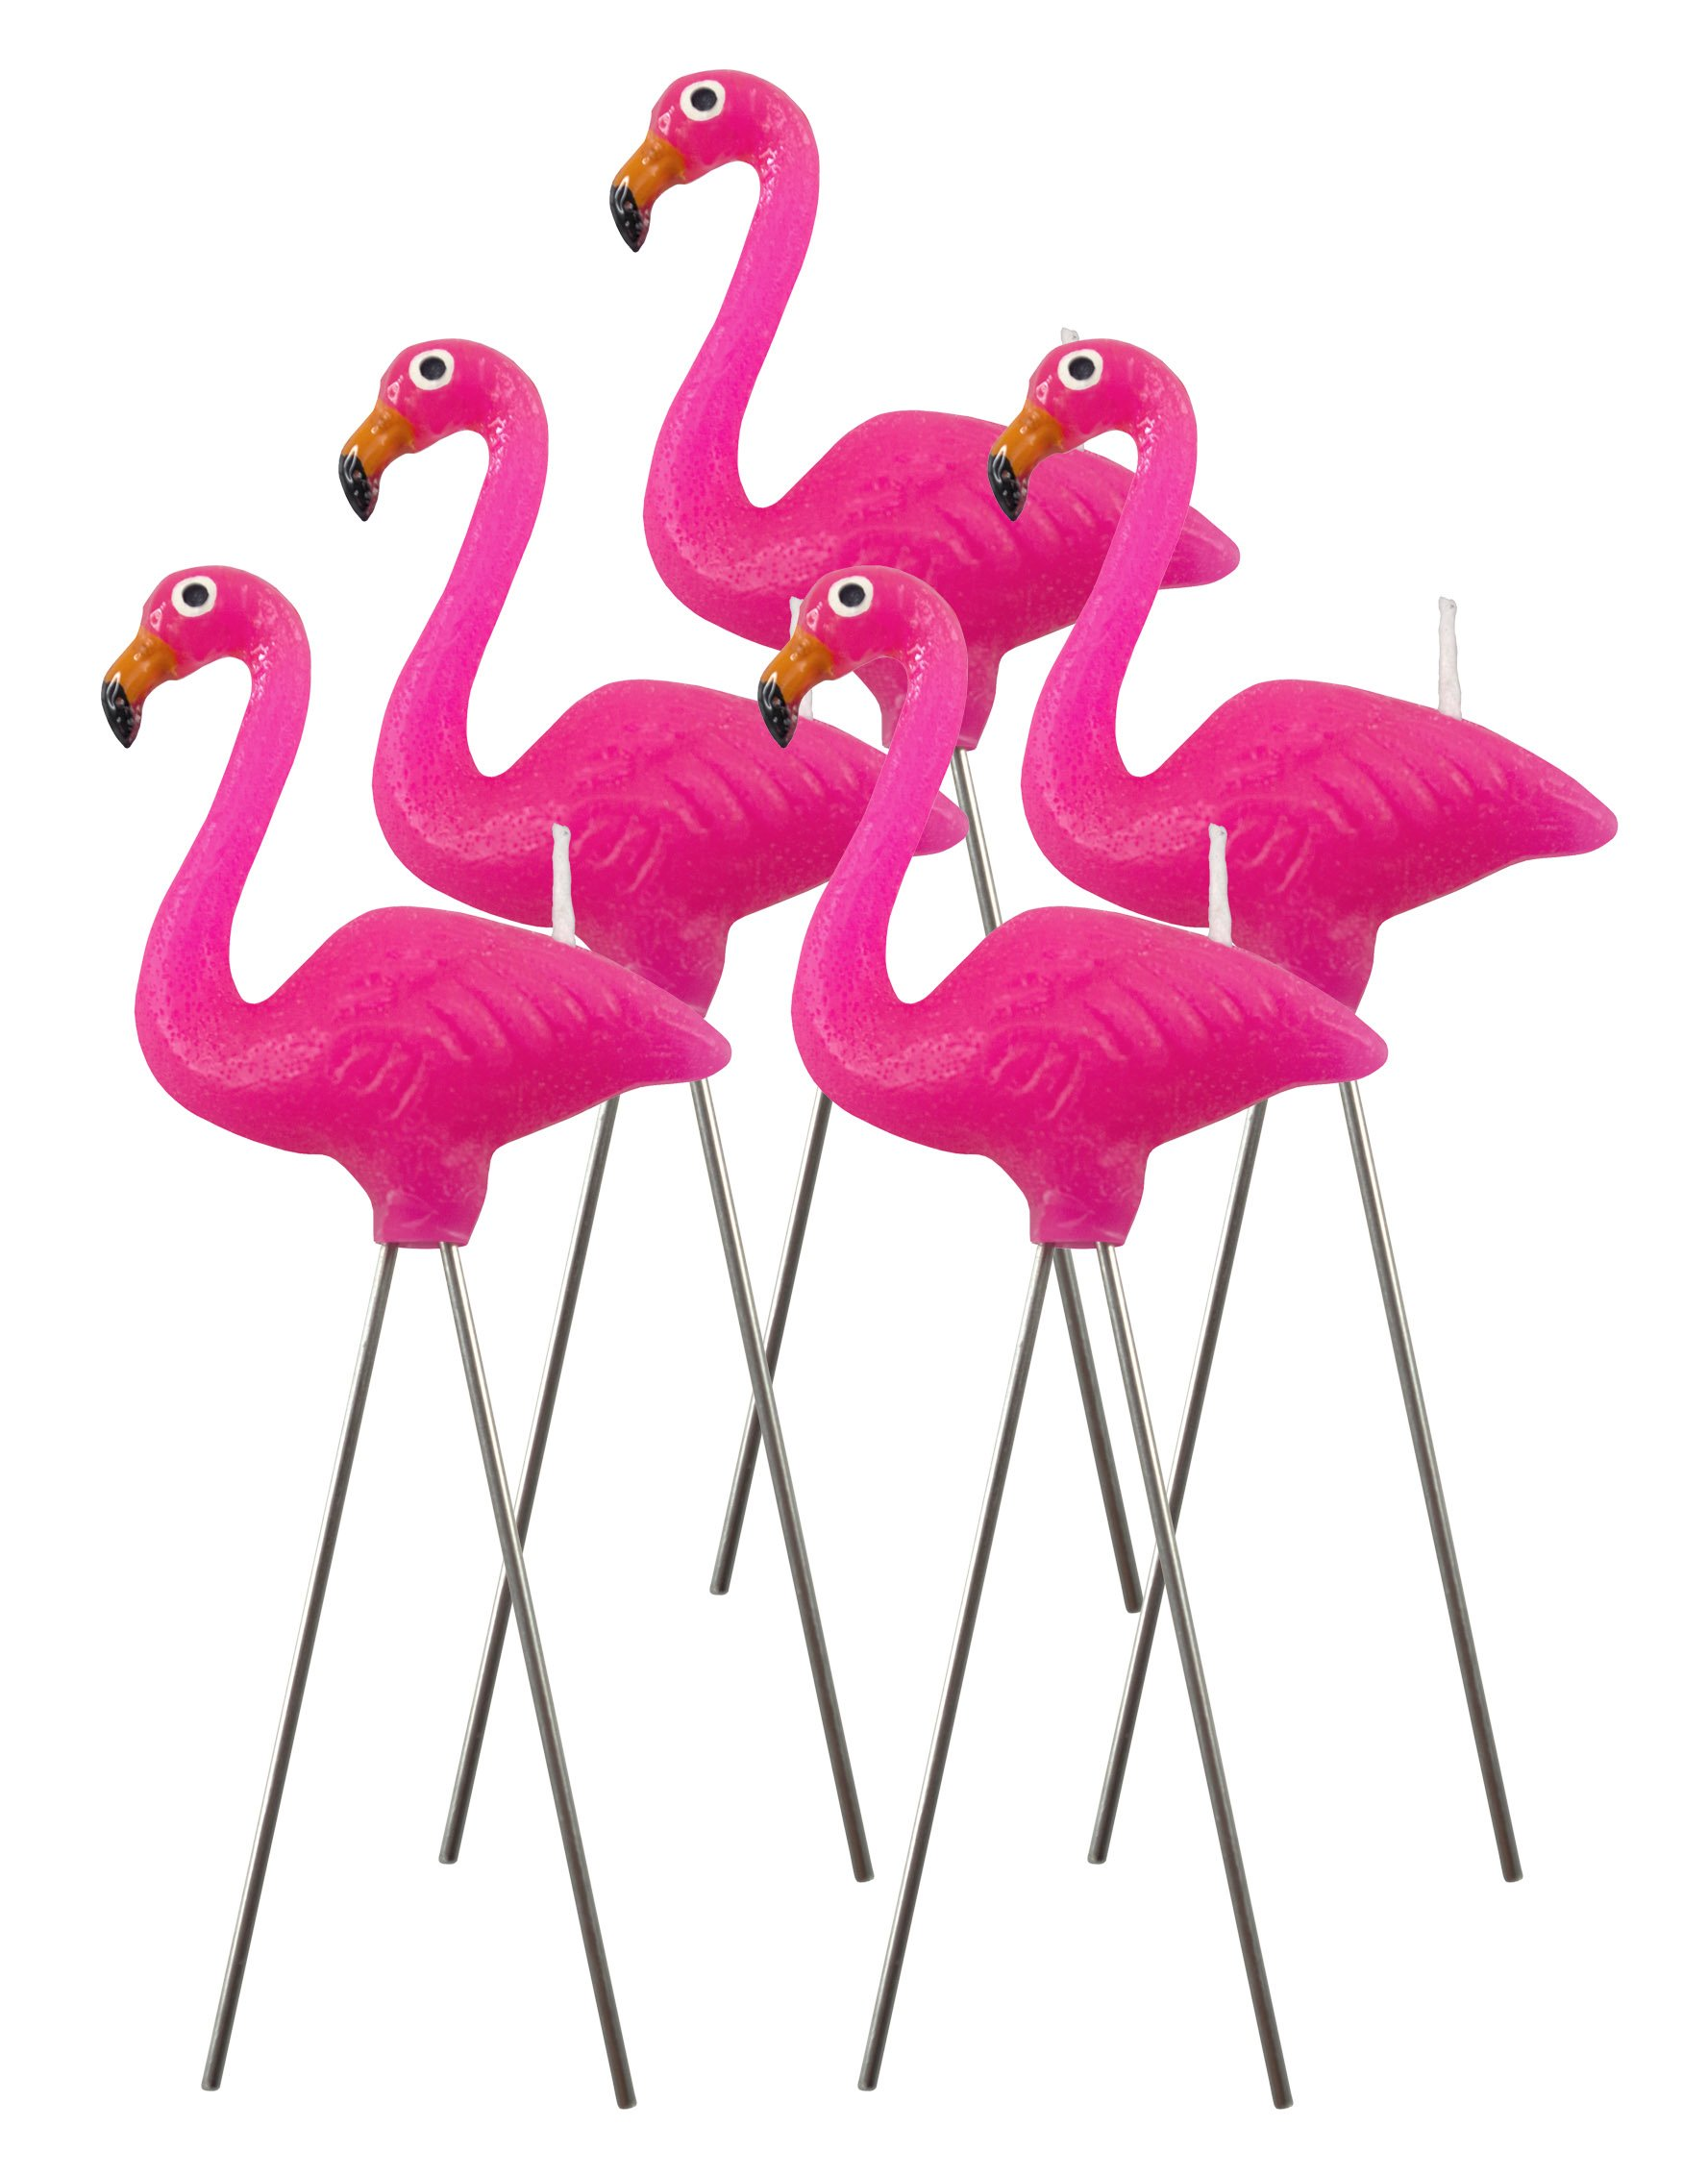 NuOp design : Pink Flamingo wax candles (5 piece set) great for birthdays and for decorations approx 4'' tall